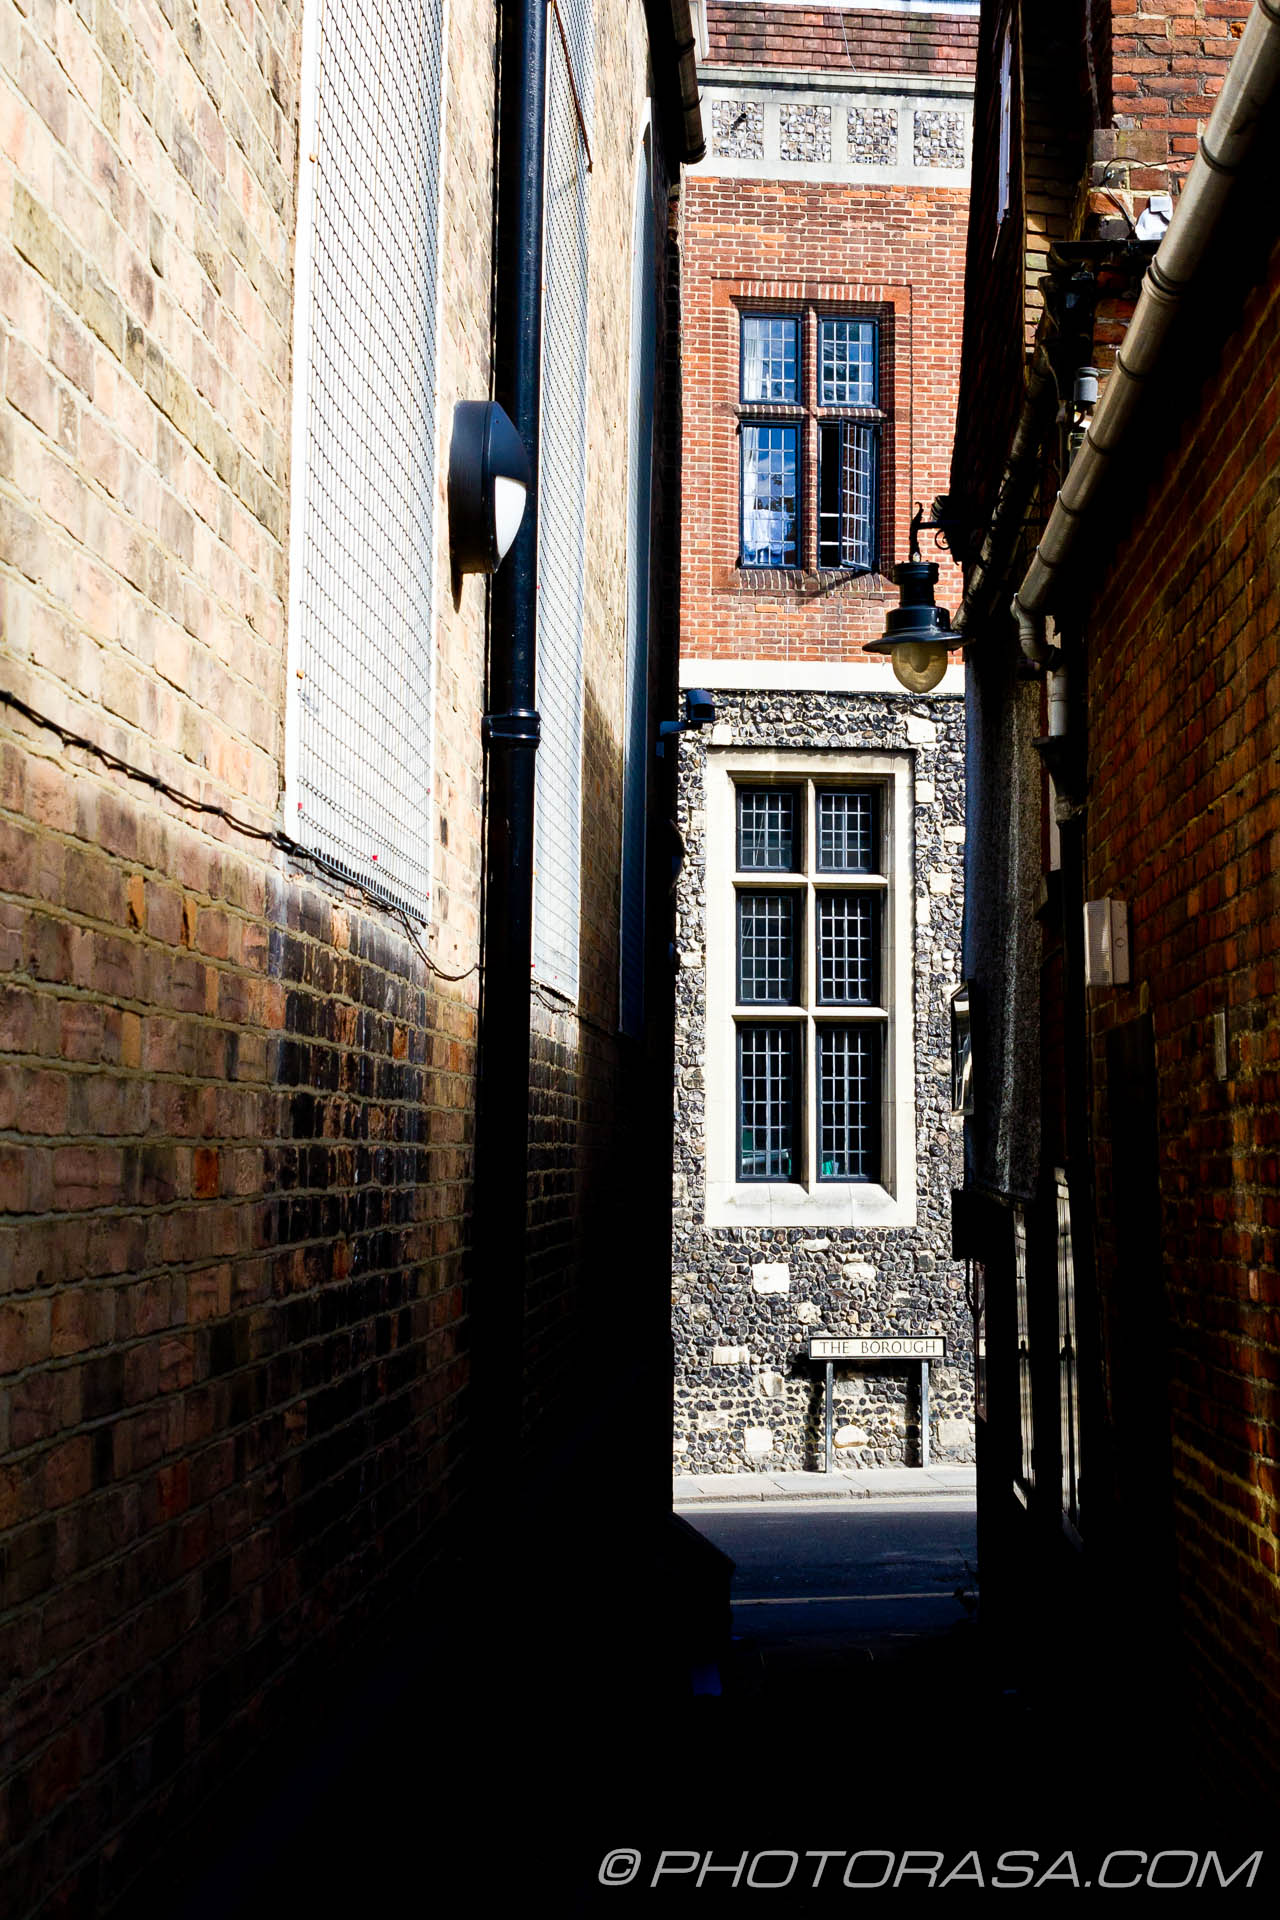 http://photorasa.com/canterbury-trip/the-borough-from-the-alley/